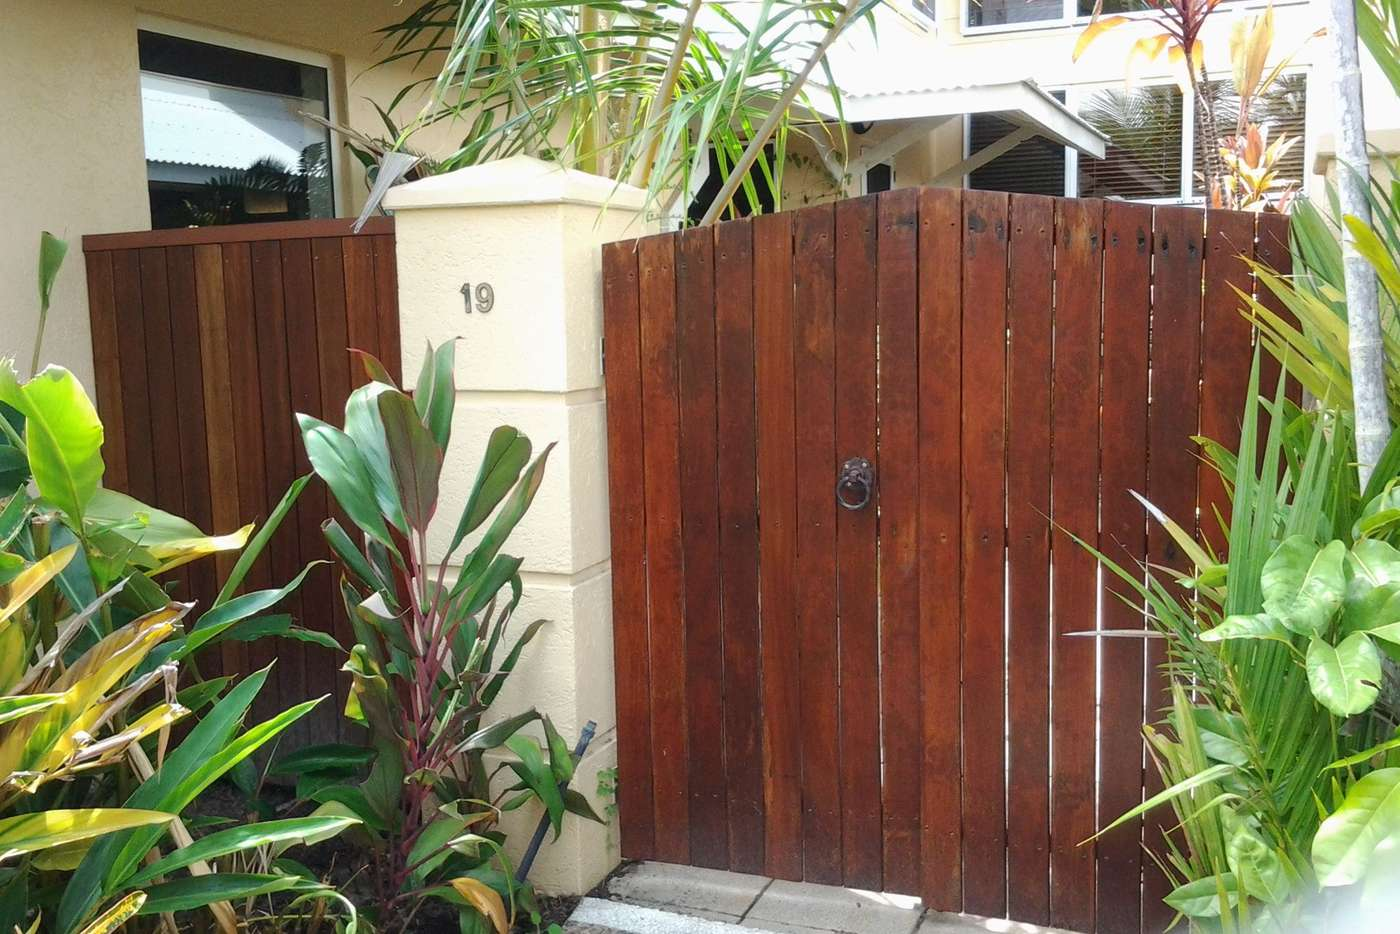 Main view of Homely townhouse listing, 19/24-70 Nautilus Street, Port Douglas QLD 4877